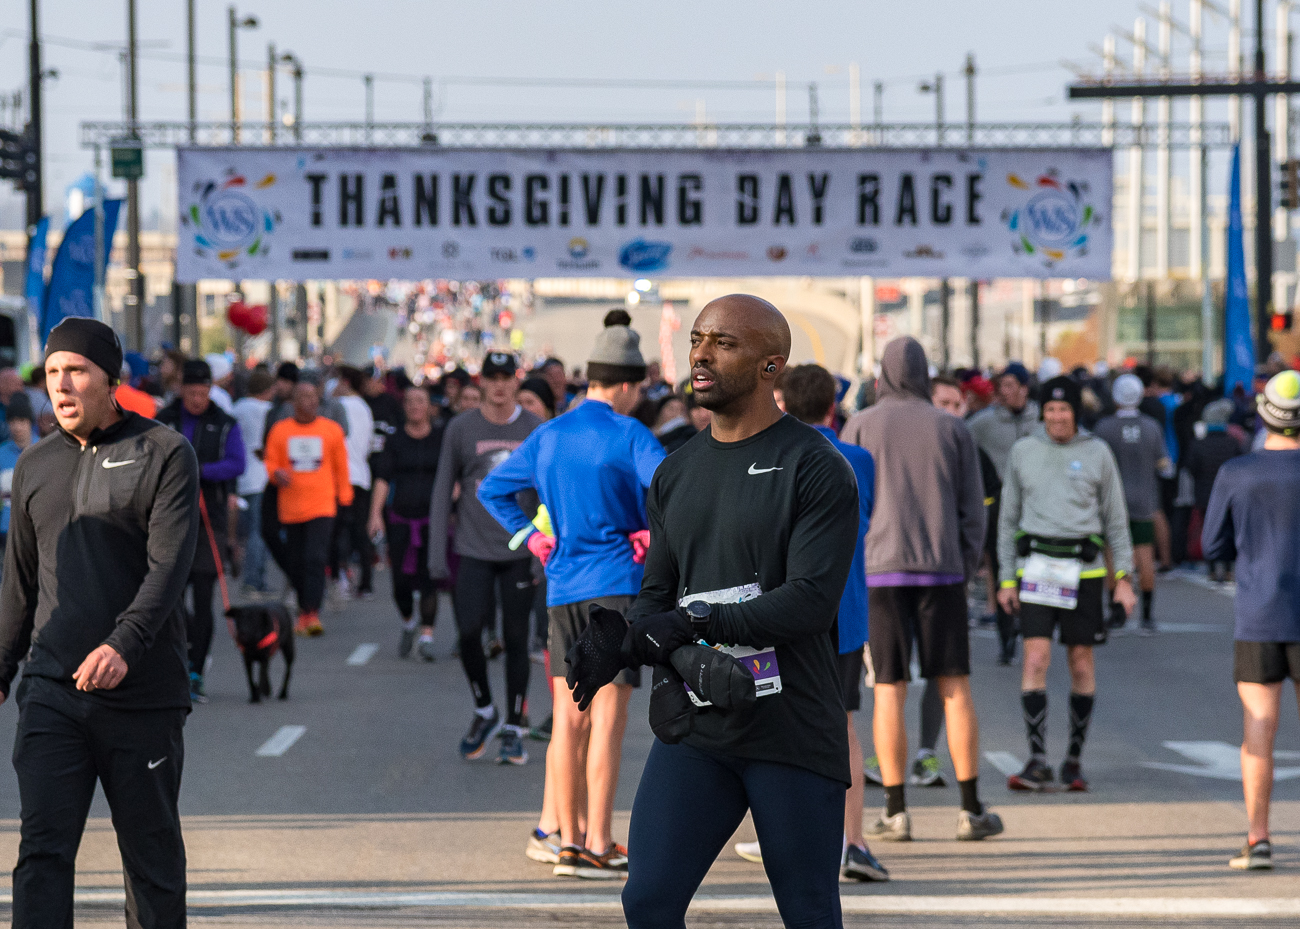 The 109th Annual Western and Southern Thanksgiving Day 10K Run/Walk was held on Thursday, Nov. 22, 2018. / Image: Phil Armstrong, Cincinnati Refined // Published: 11.23.18